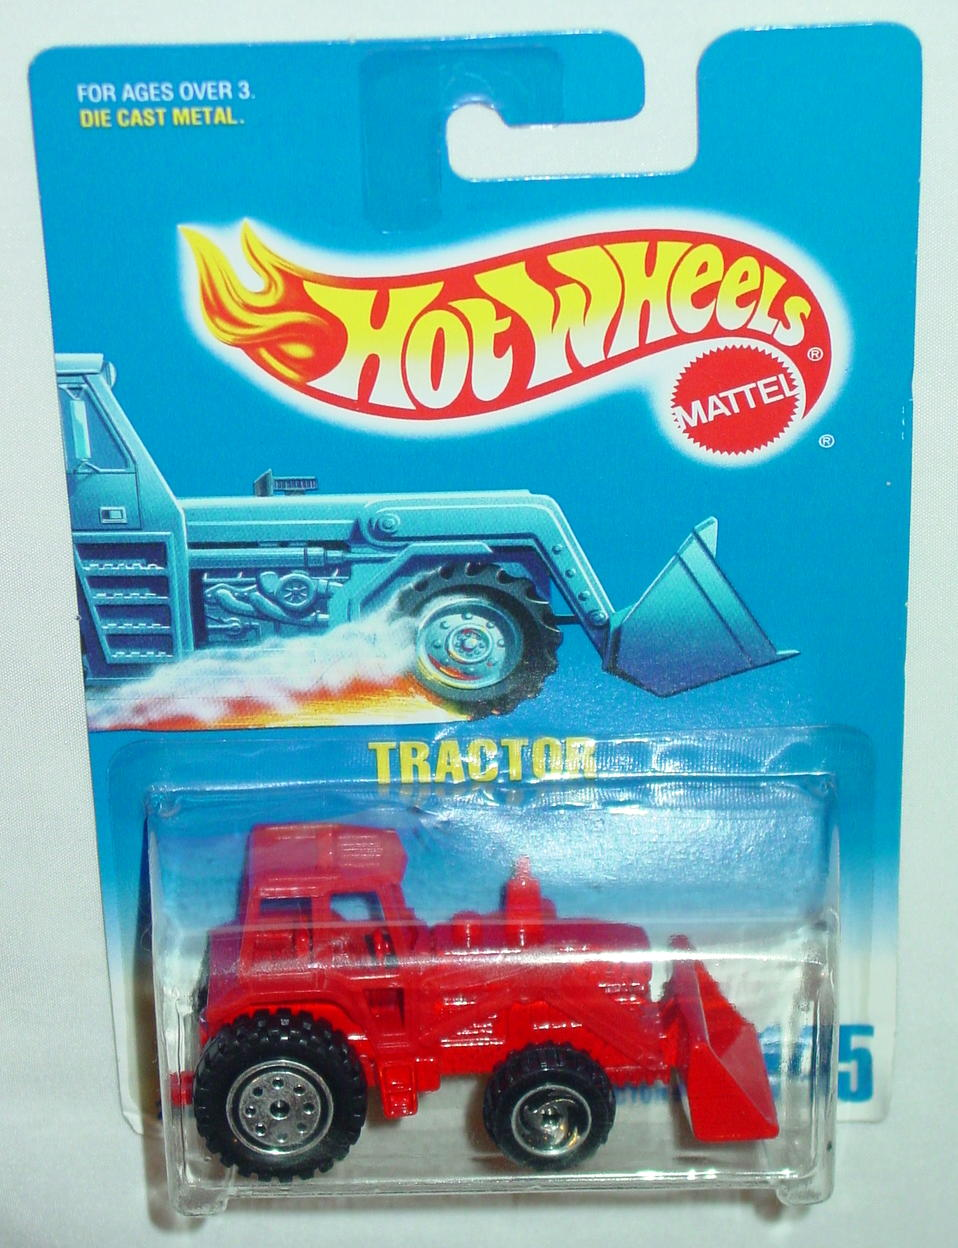 Blackwalls 2075 - 145 Tractor Red DW3(?)